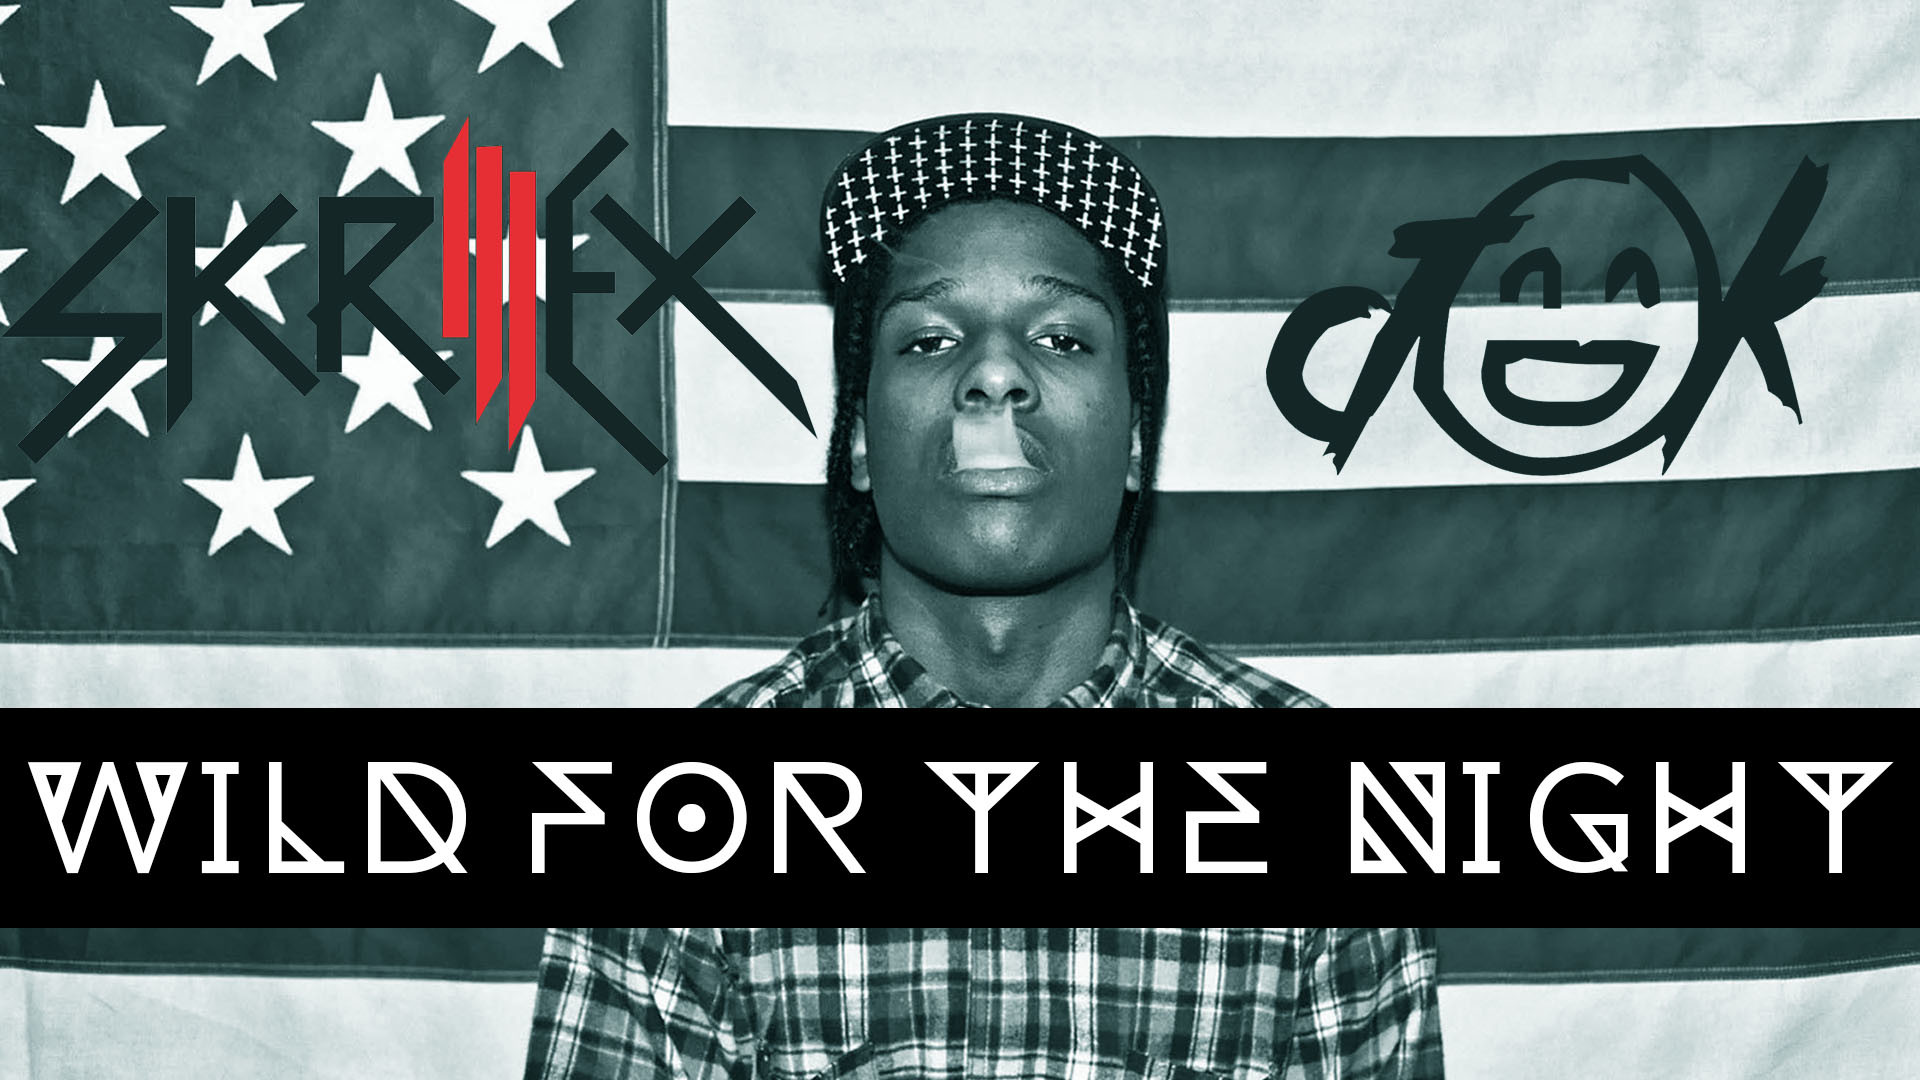 ASAP ROCKY WALLPAPERS FREE Wallpapers & Background images .